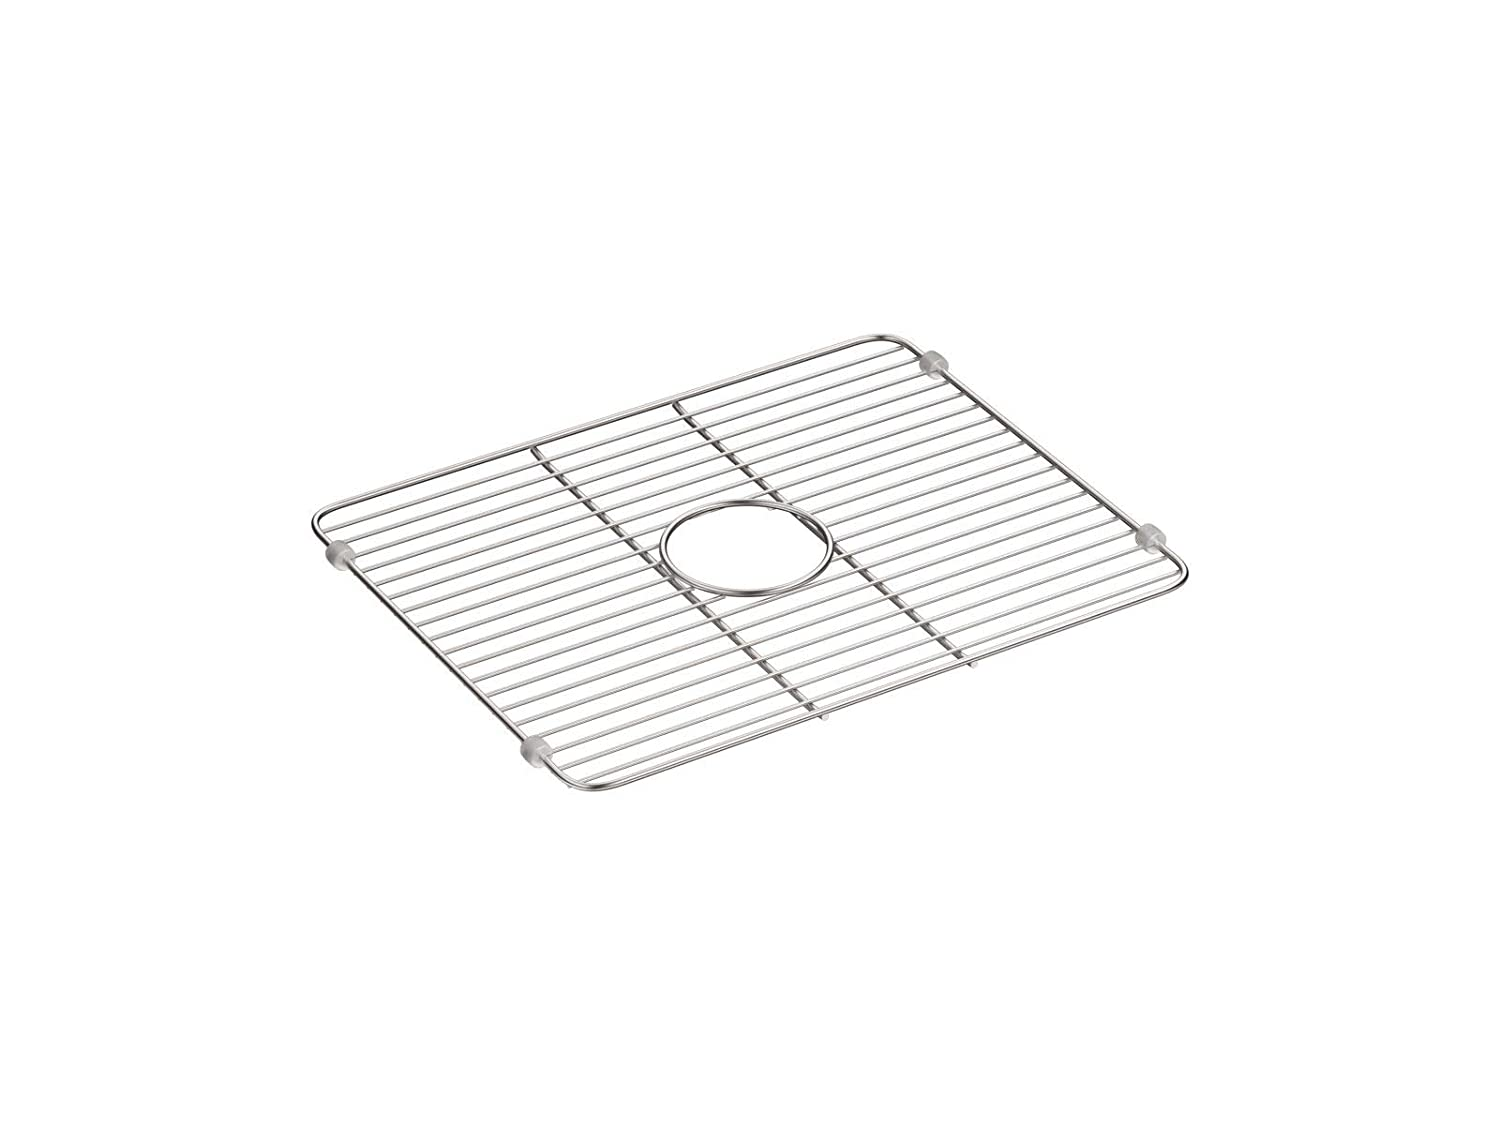 Kohler 5137 St Irontones Sink Rack 11 X 1825 X 1438 Inches